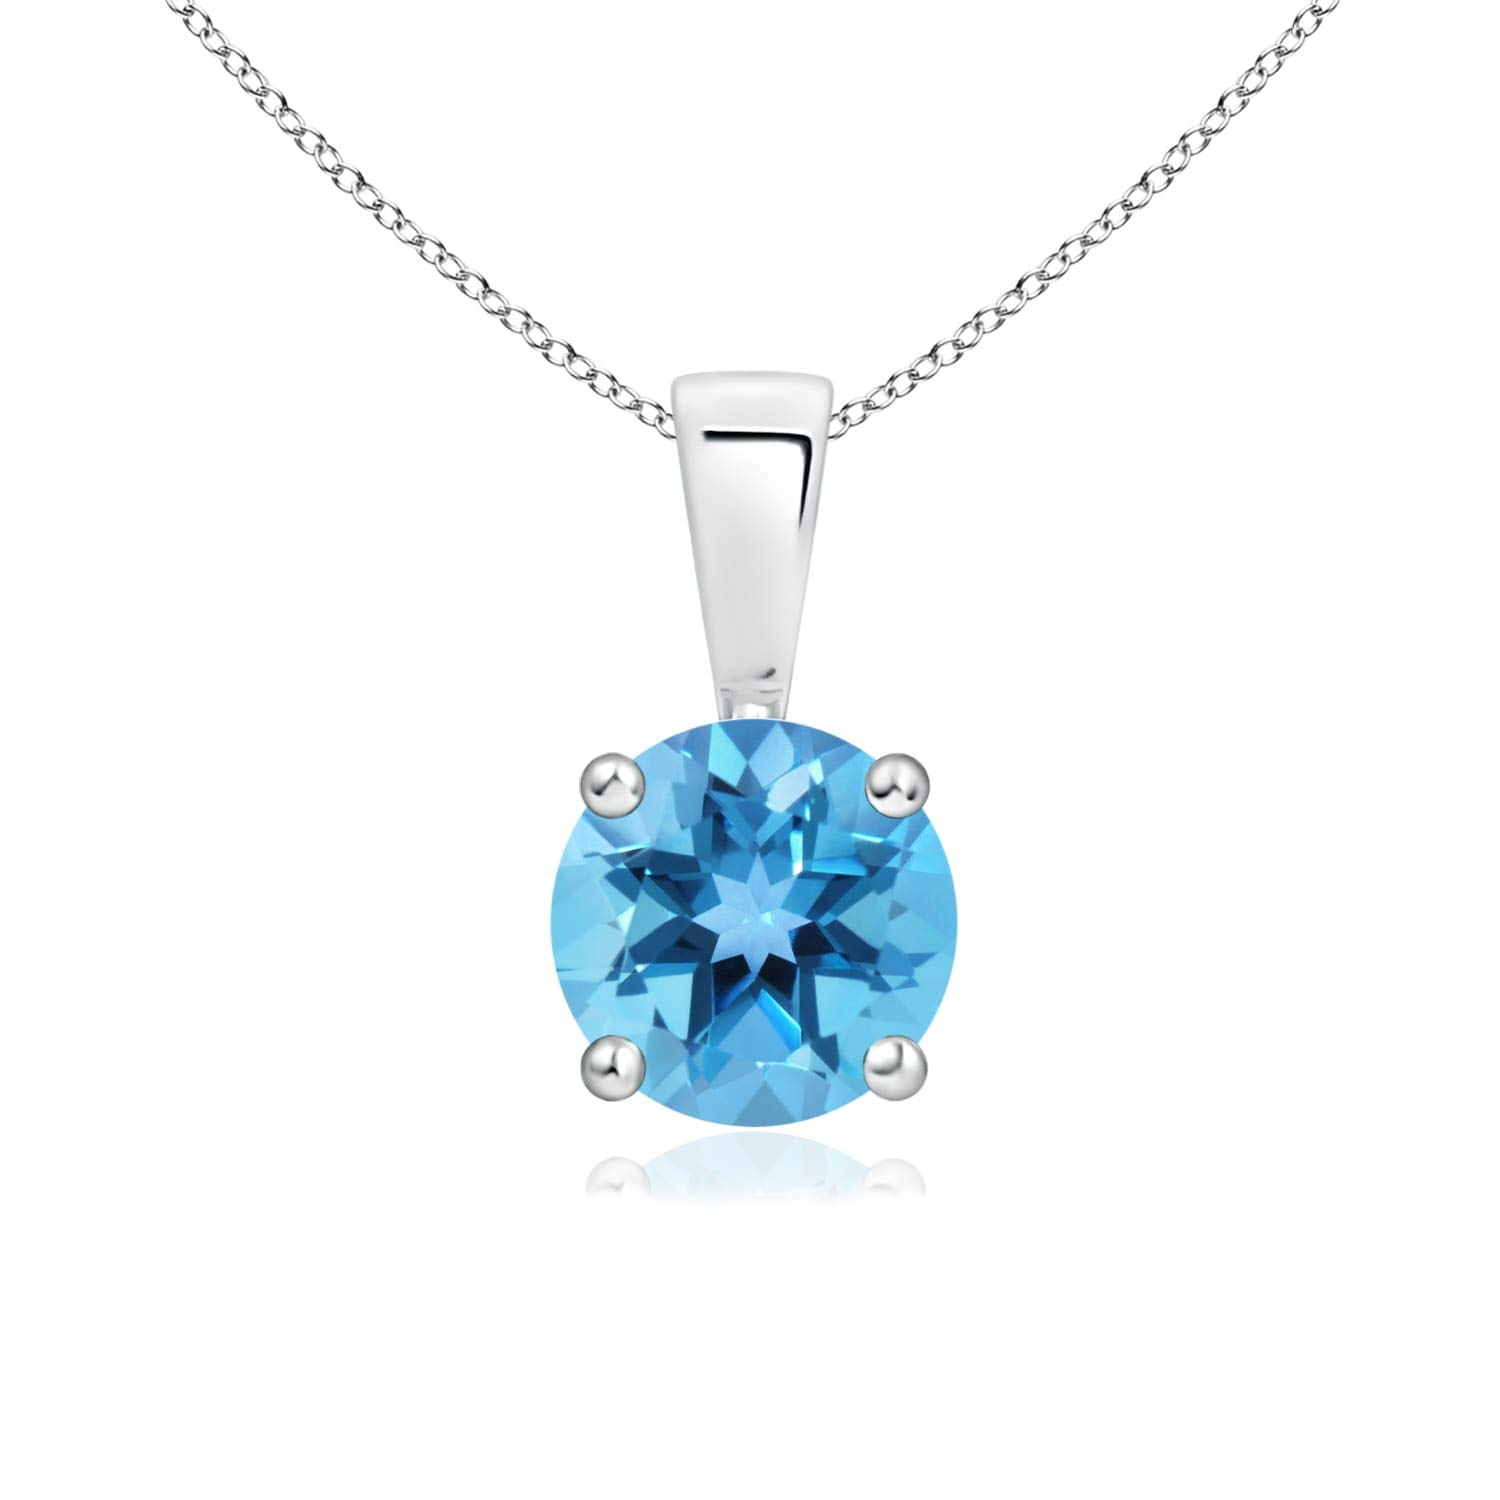 Classic Round Swiss Blue Topaz Solitaire Pendant in Silver 6mm Swiss Blue Topaz